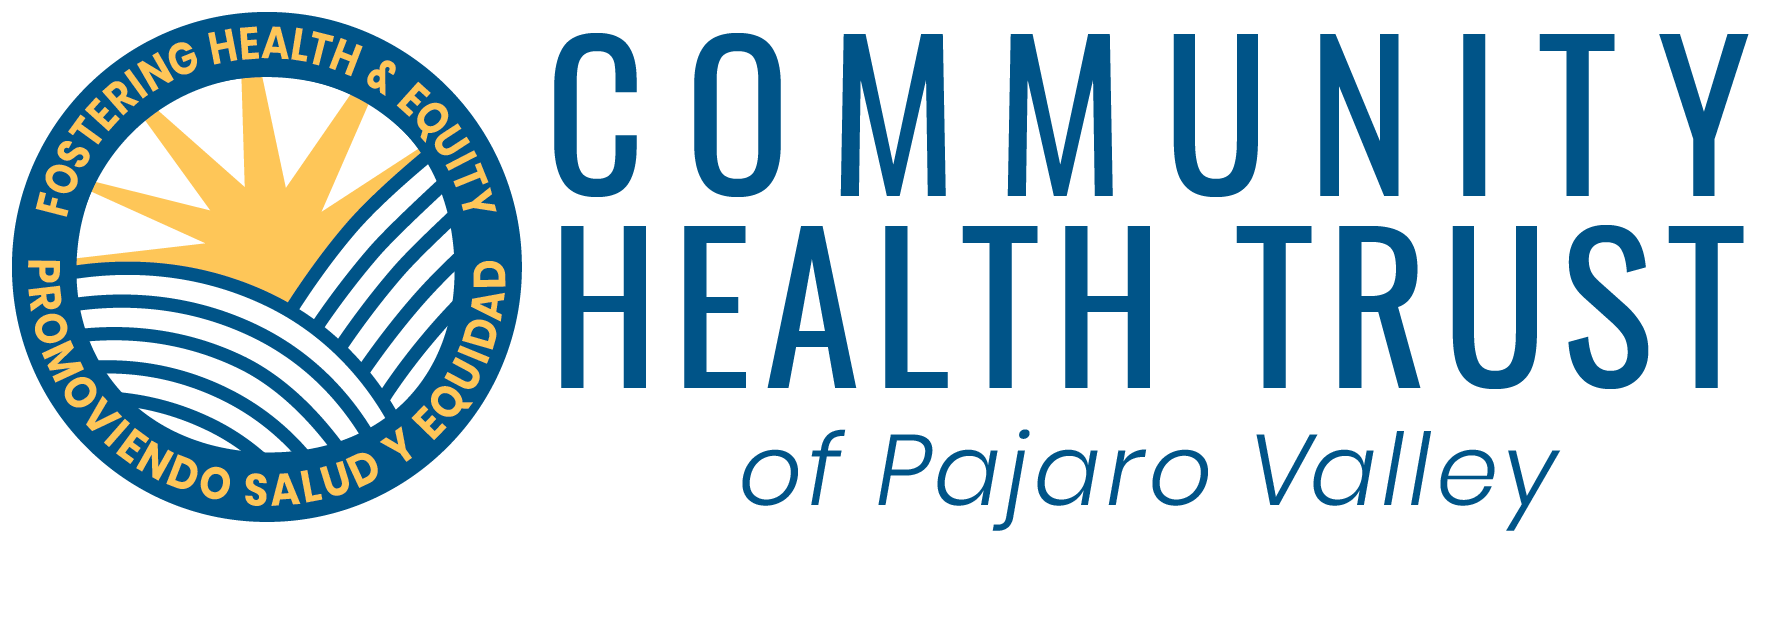 Pajaro Valley Community Health Trust